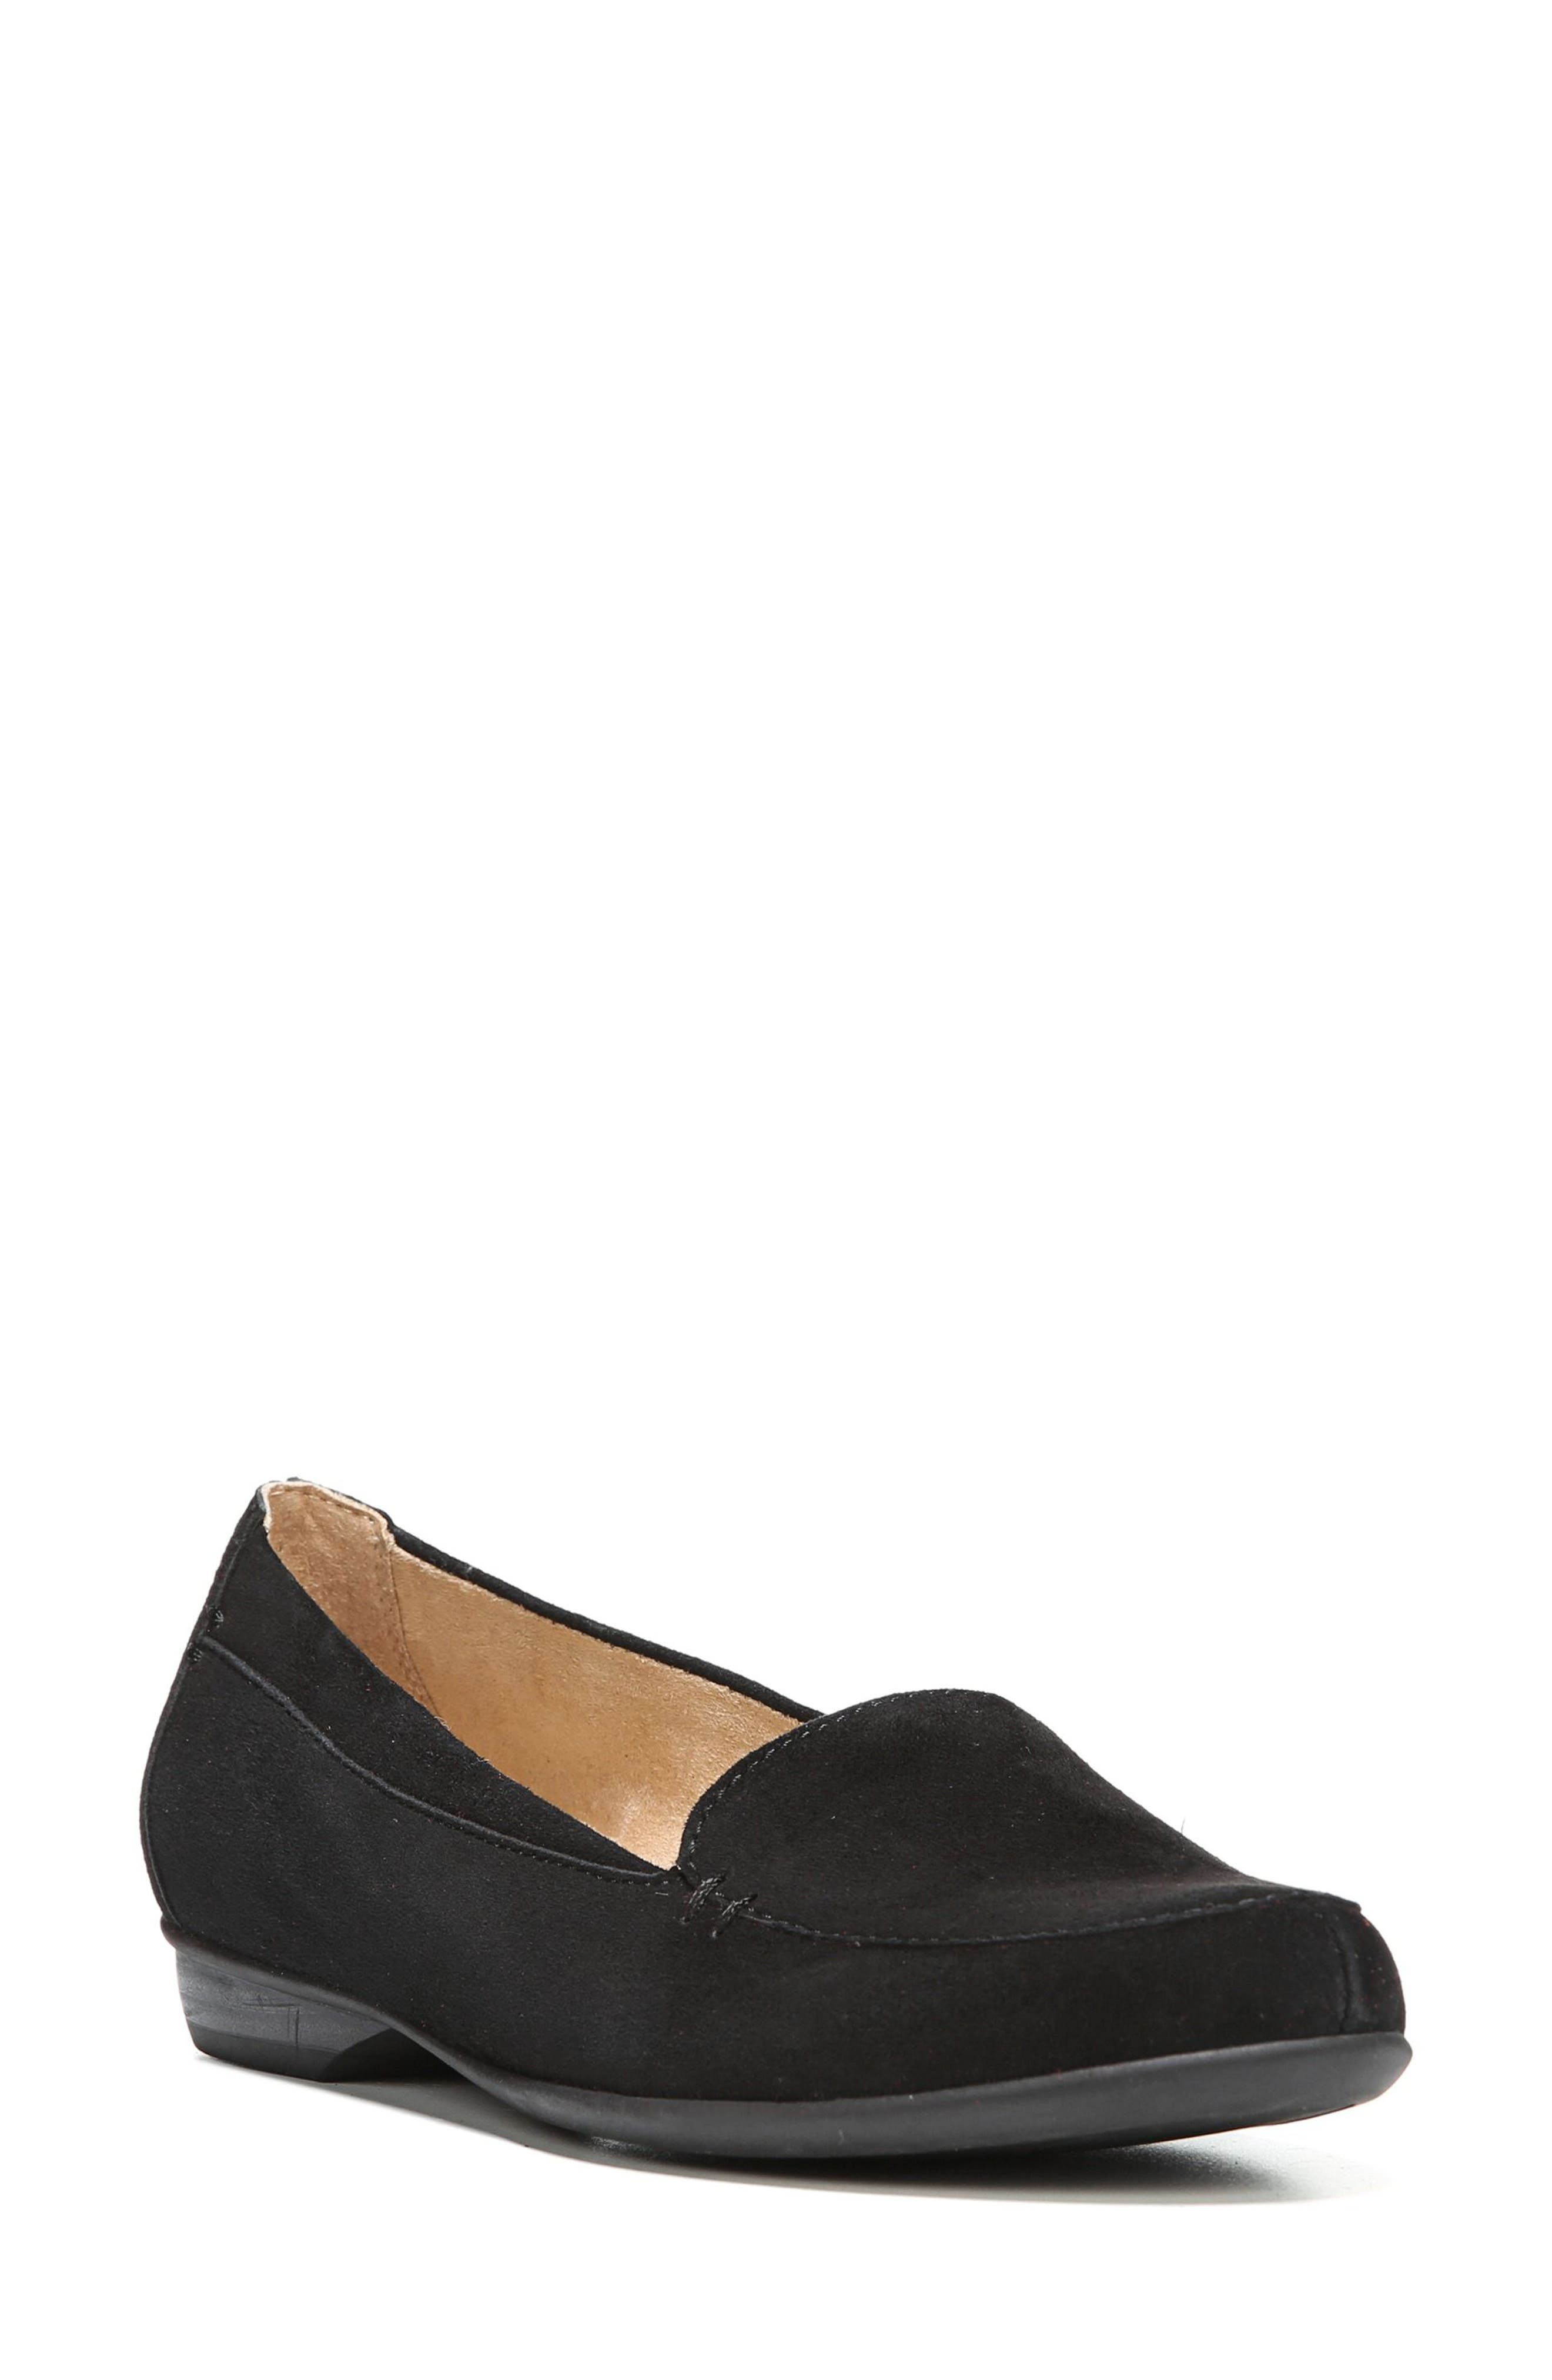 Naturalizer 'Saban' Leather Loafer (Women)